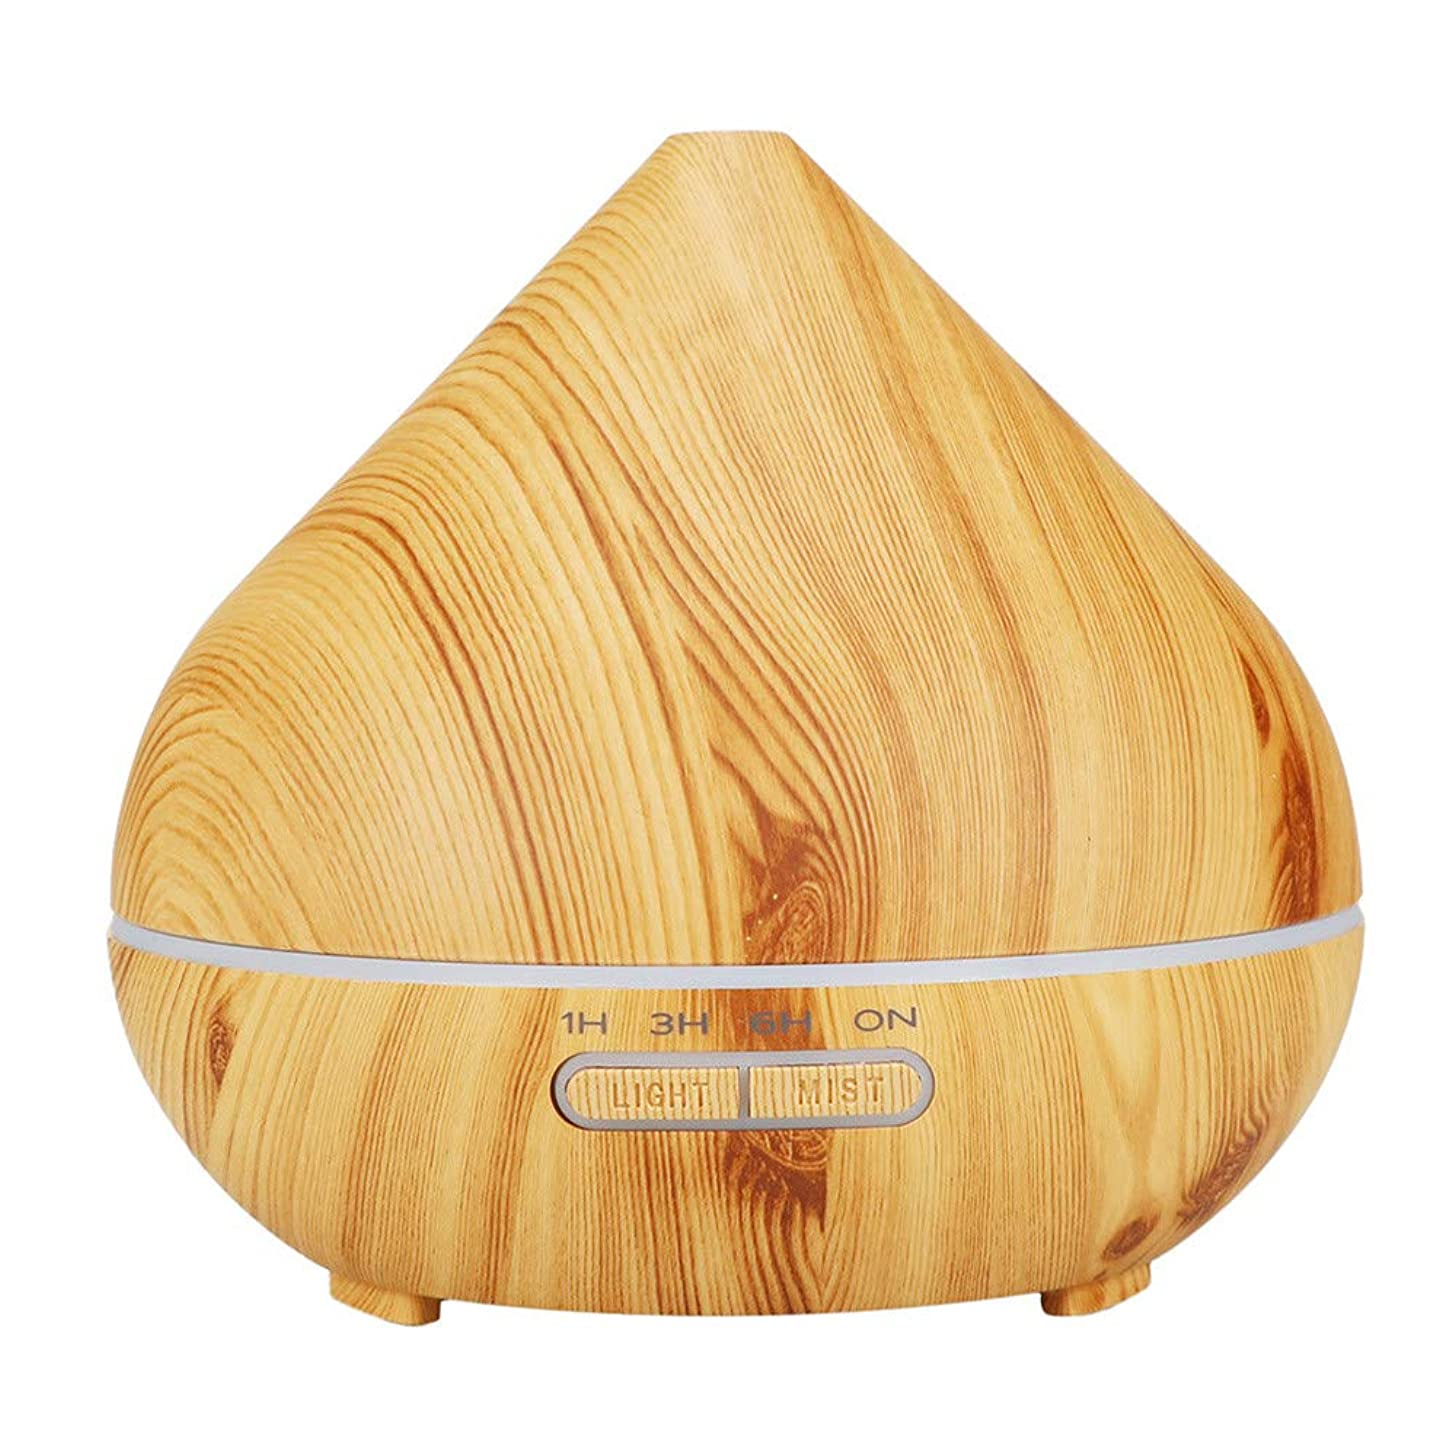 Mini Humidifiers For Desk,Wood Grain Home Diffuser Ultrasonic Air Humidifier Purifier High Capacity 300ml,Aromatherapy Humidifier Air Innovations,B,Free Size